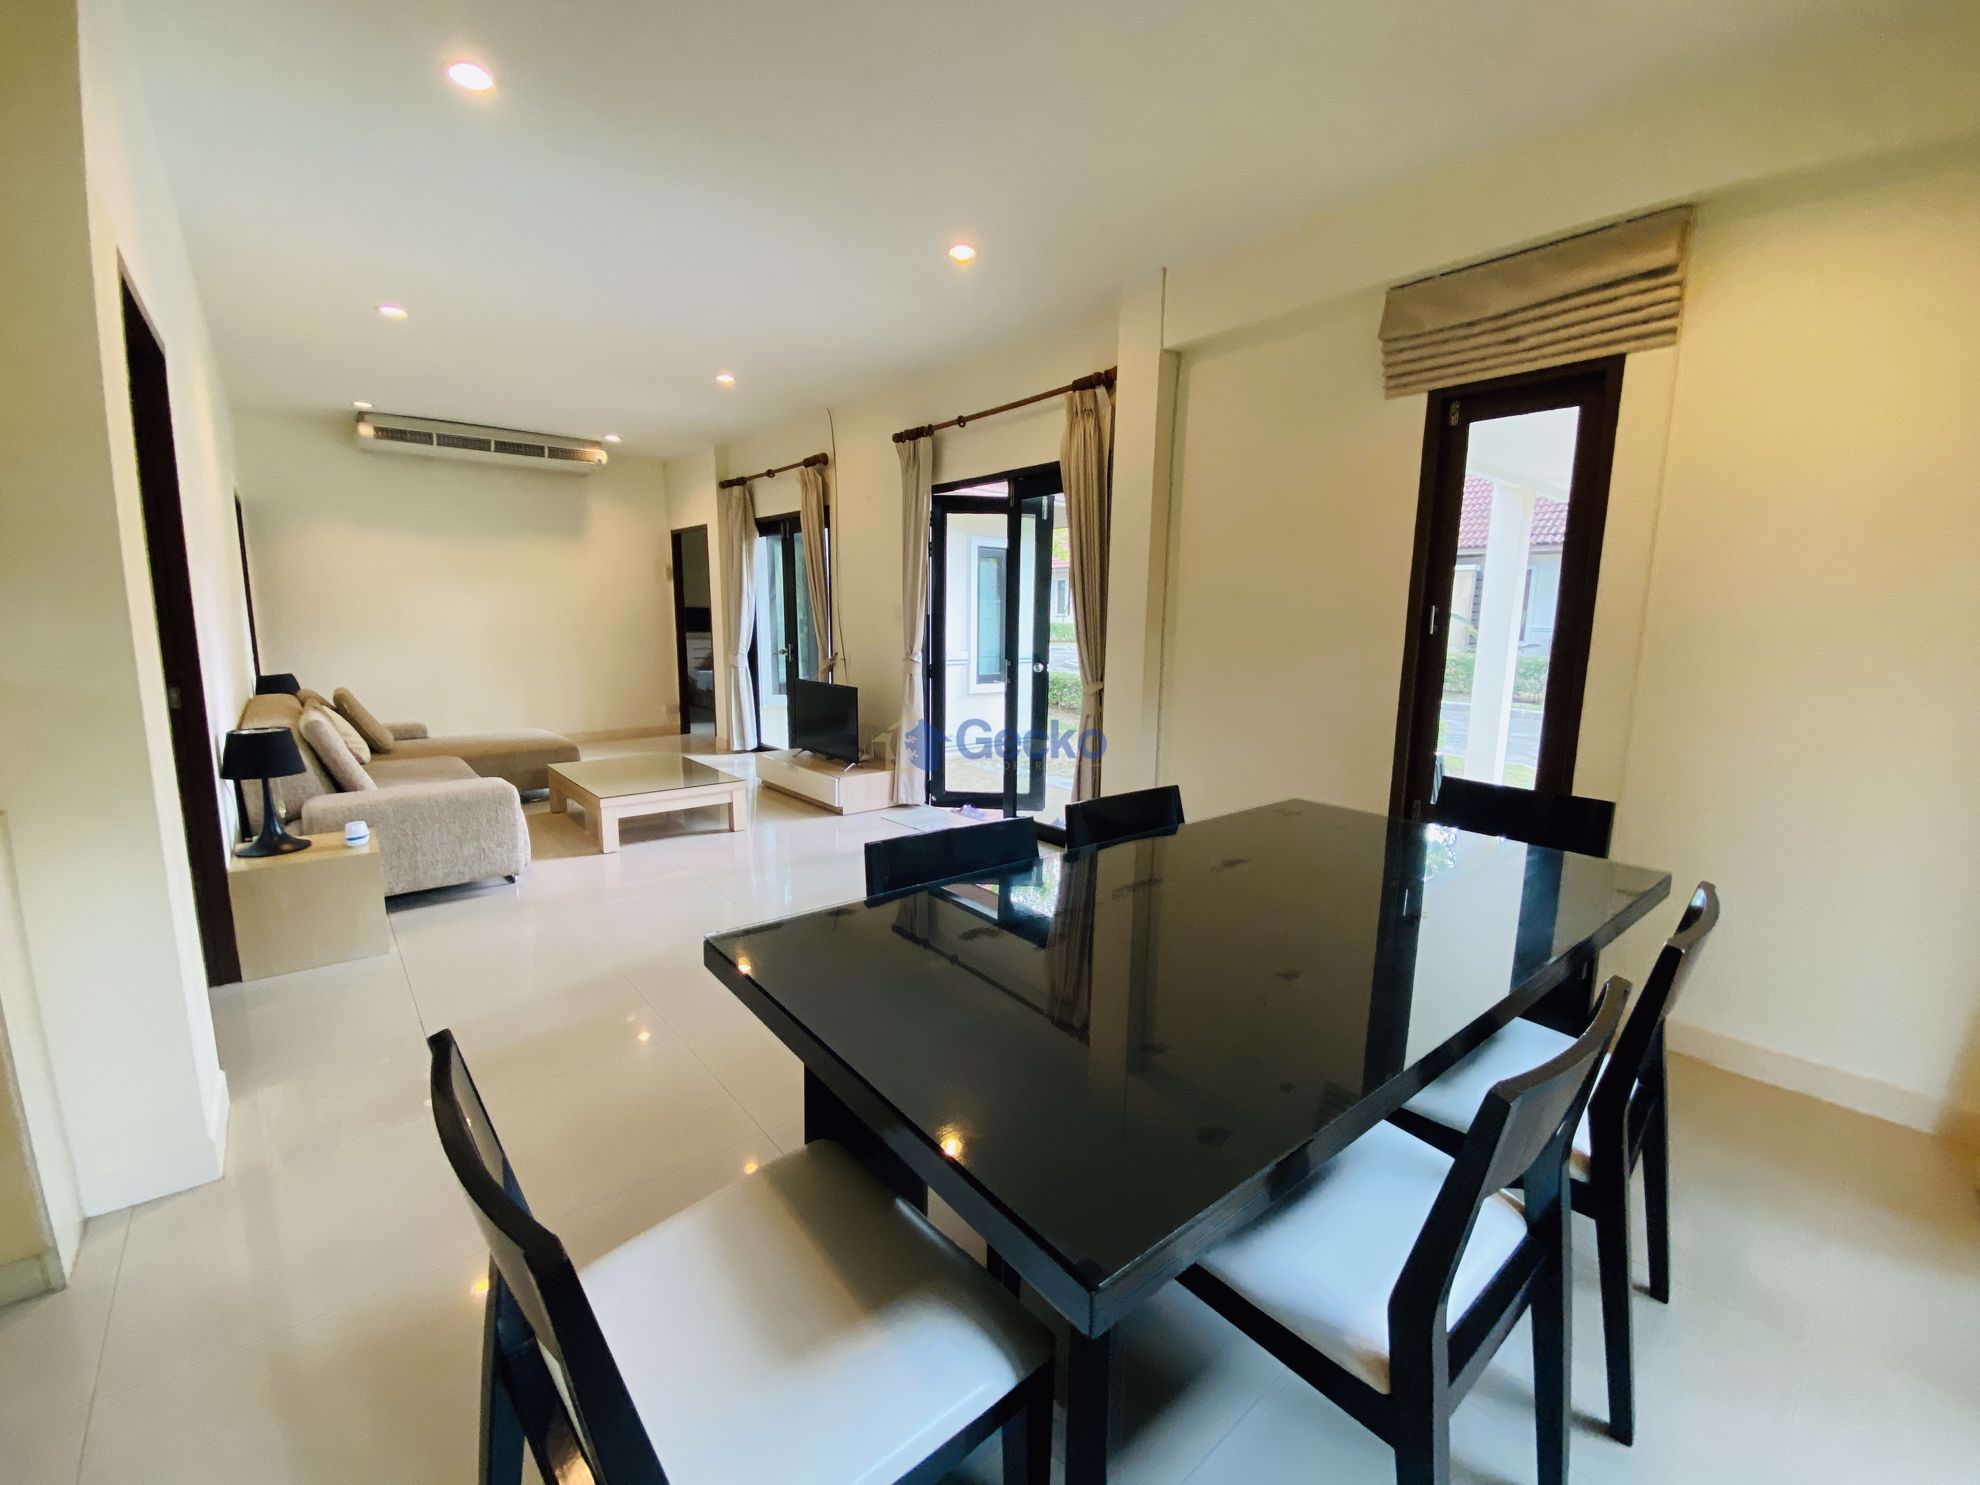 Picture of 3 Bedrooms bed in House in Sefton Park in East Pattaya H009103